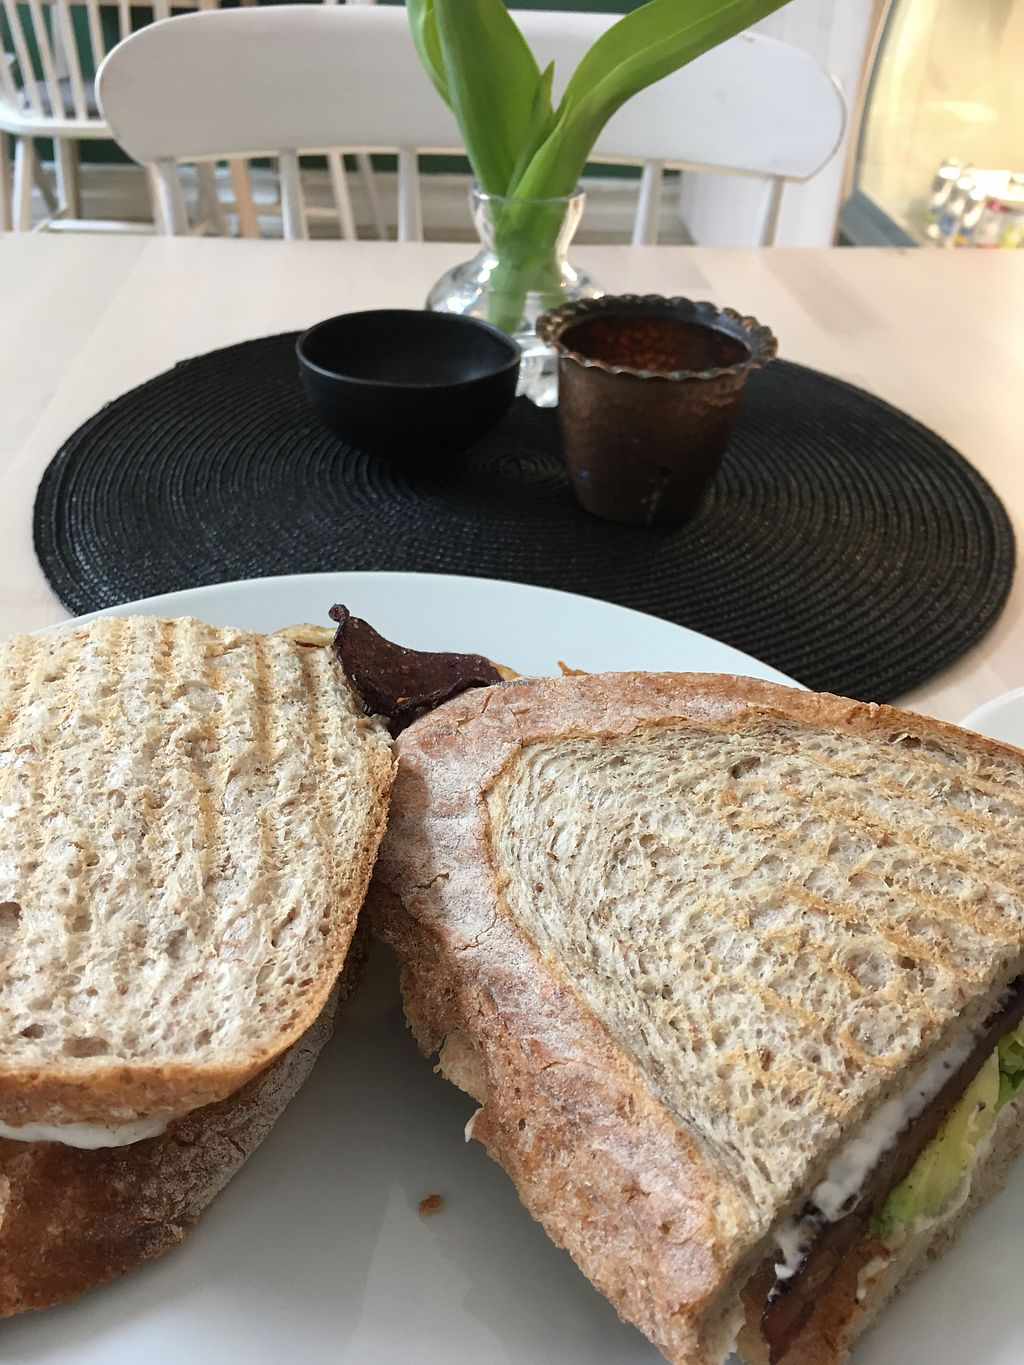 """Photo of Truefood Cafe  by <a href=""""/members/profile/Owen2393"""">Owen2393</a> <br/>BLT <br/> March 5, 2018  - <a href='/contact/abuse/image/109958/367036'>Report</a>"""